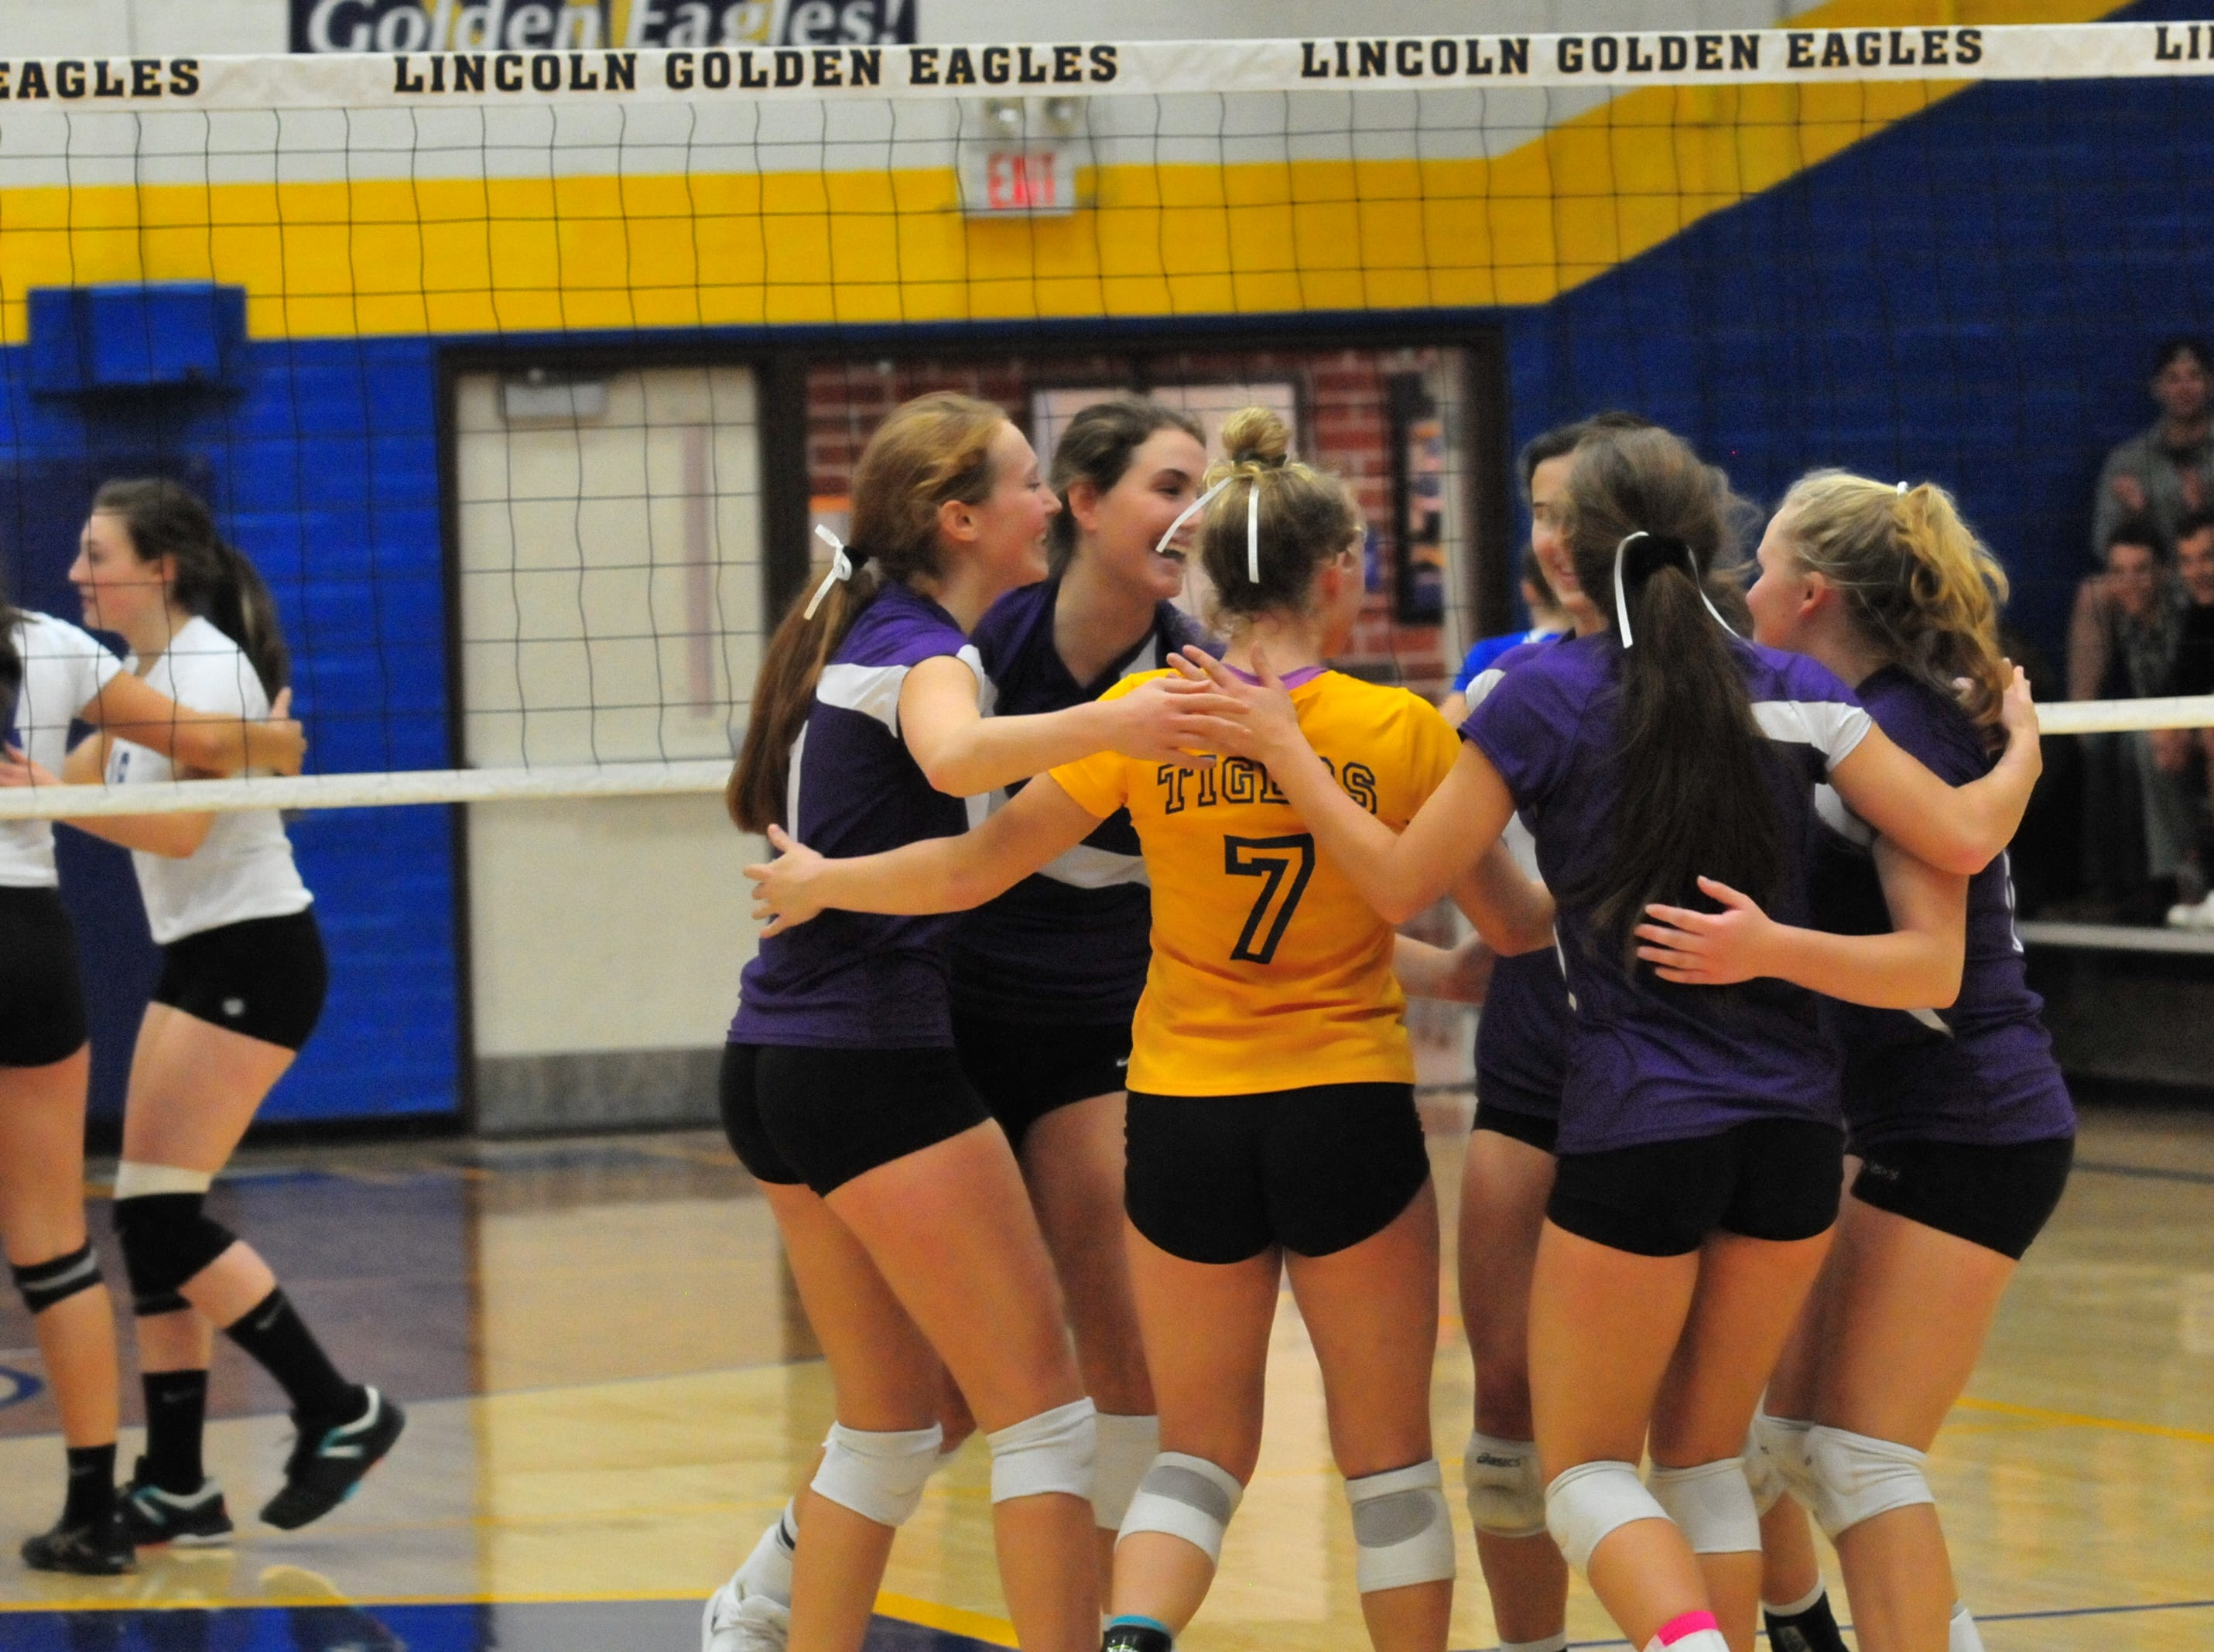 The Hagerstown volleyball team celebrates a point during a 3-0 win over Centerville Thursday, Oct. 11, 2018.